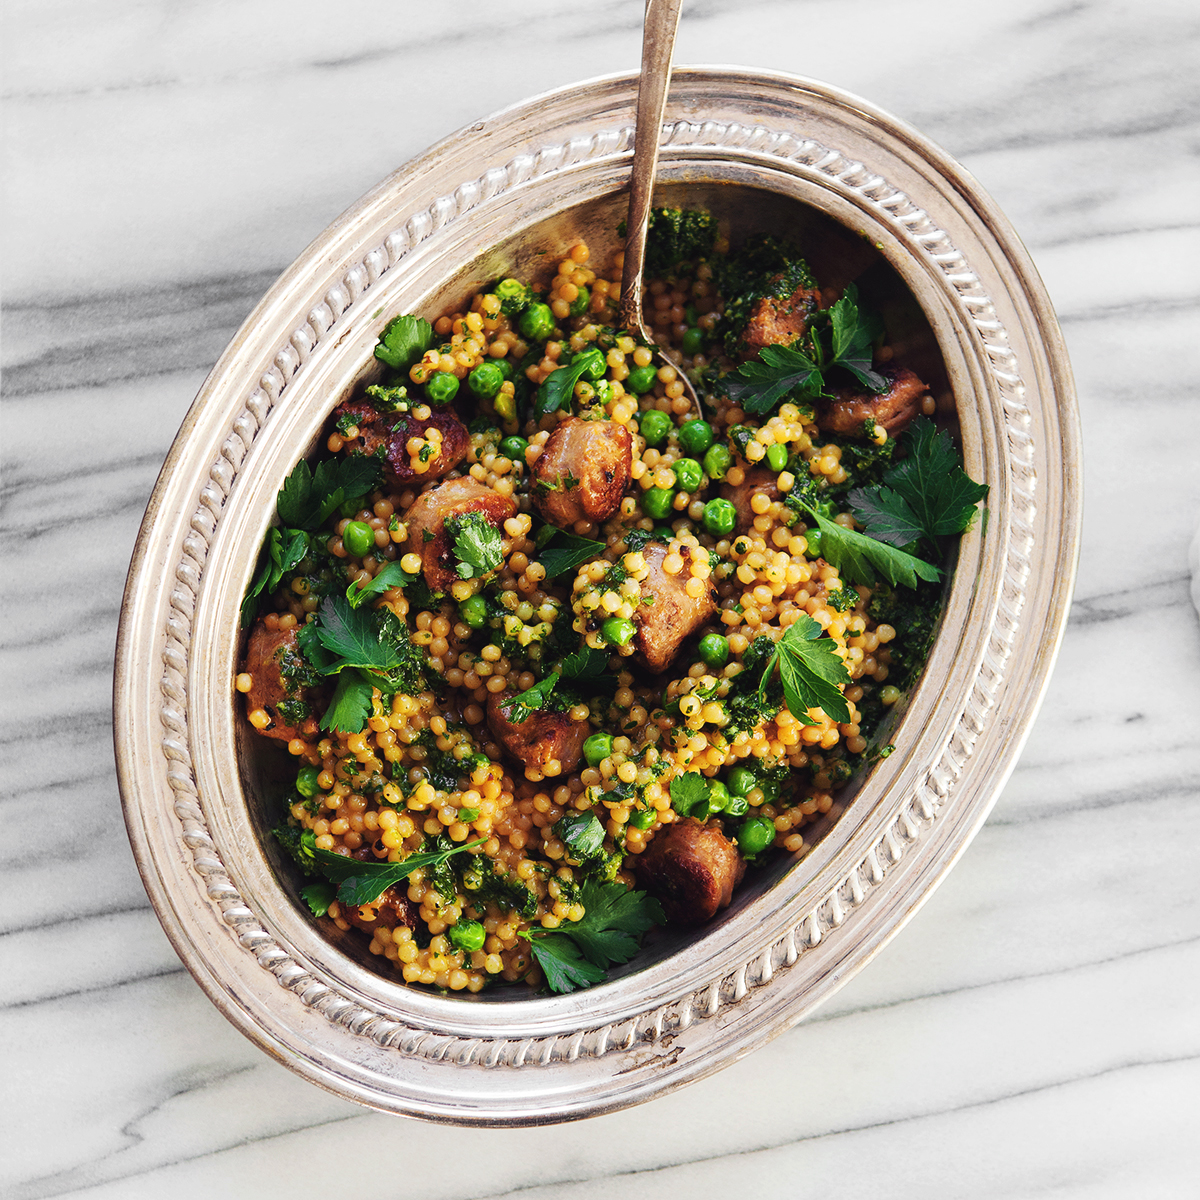 ABHSS_Israeli-Couscous-Risotto-with-Sausage_Peas_Parsley-Pesto_0071.jpg